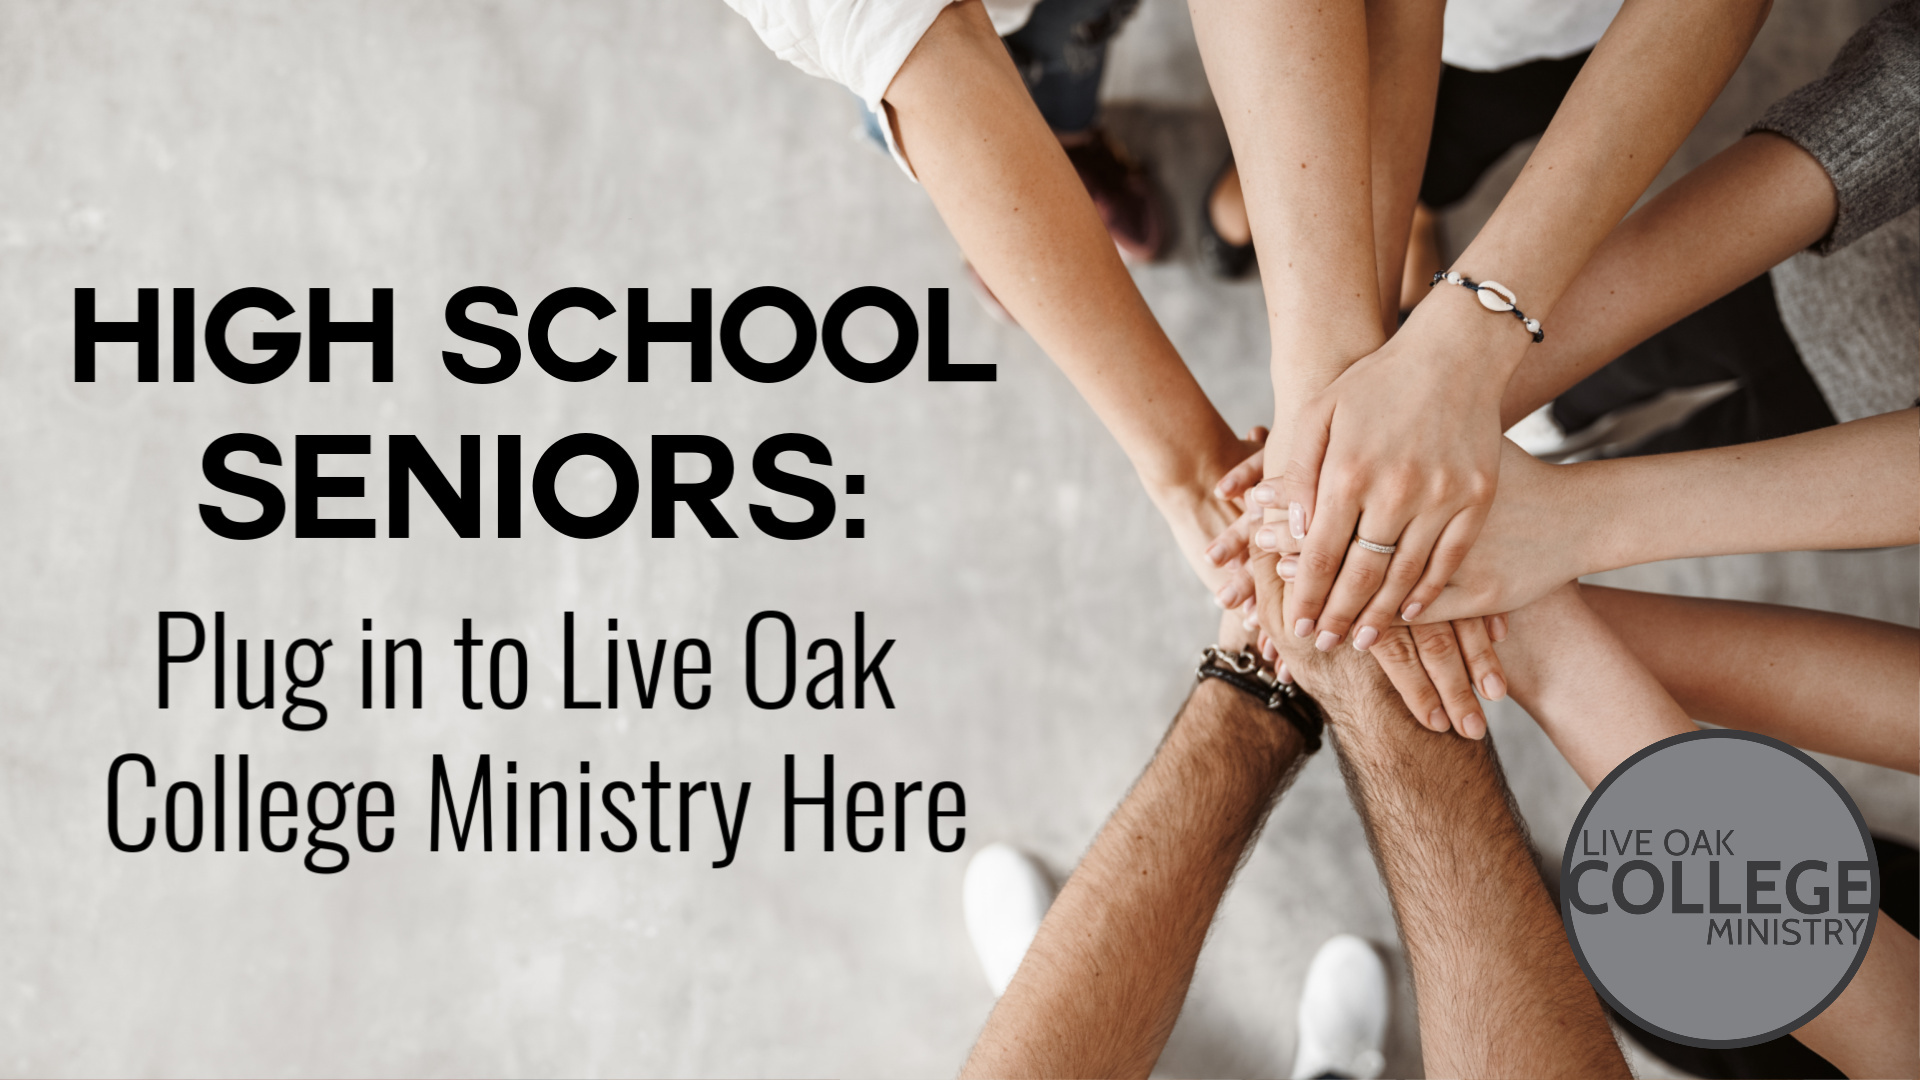 High School Seniors: Plug In to College Ministry!